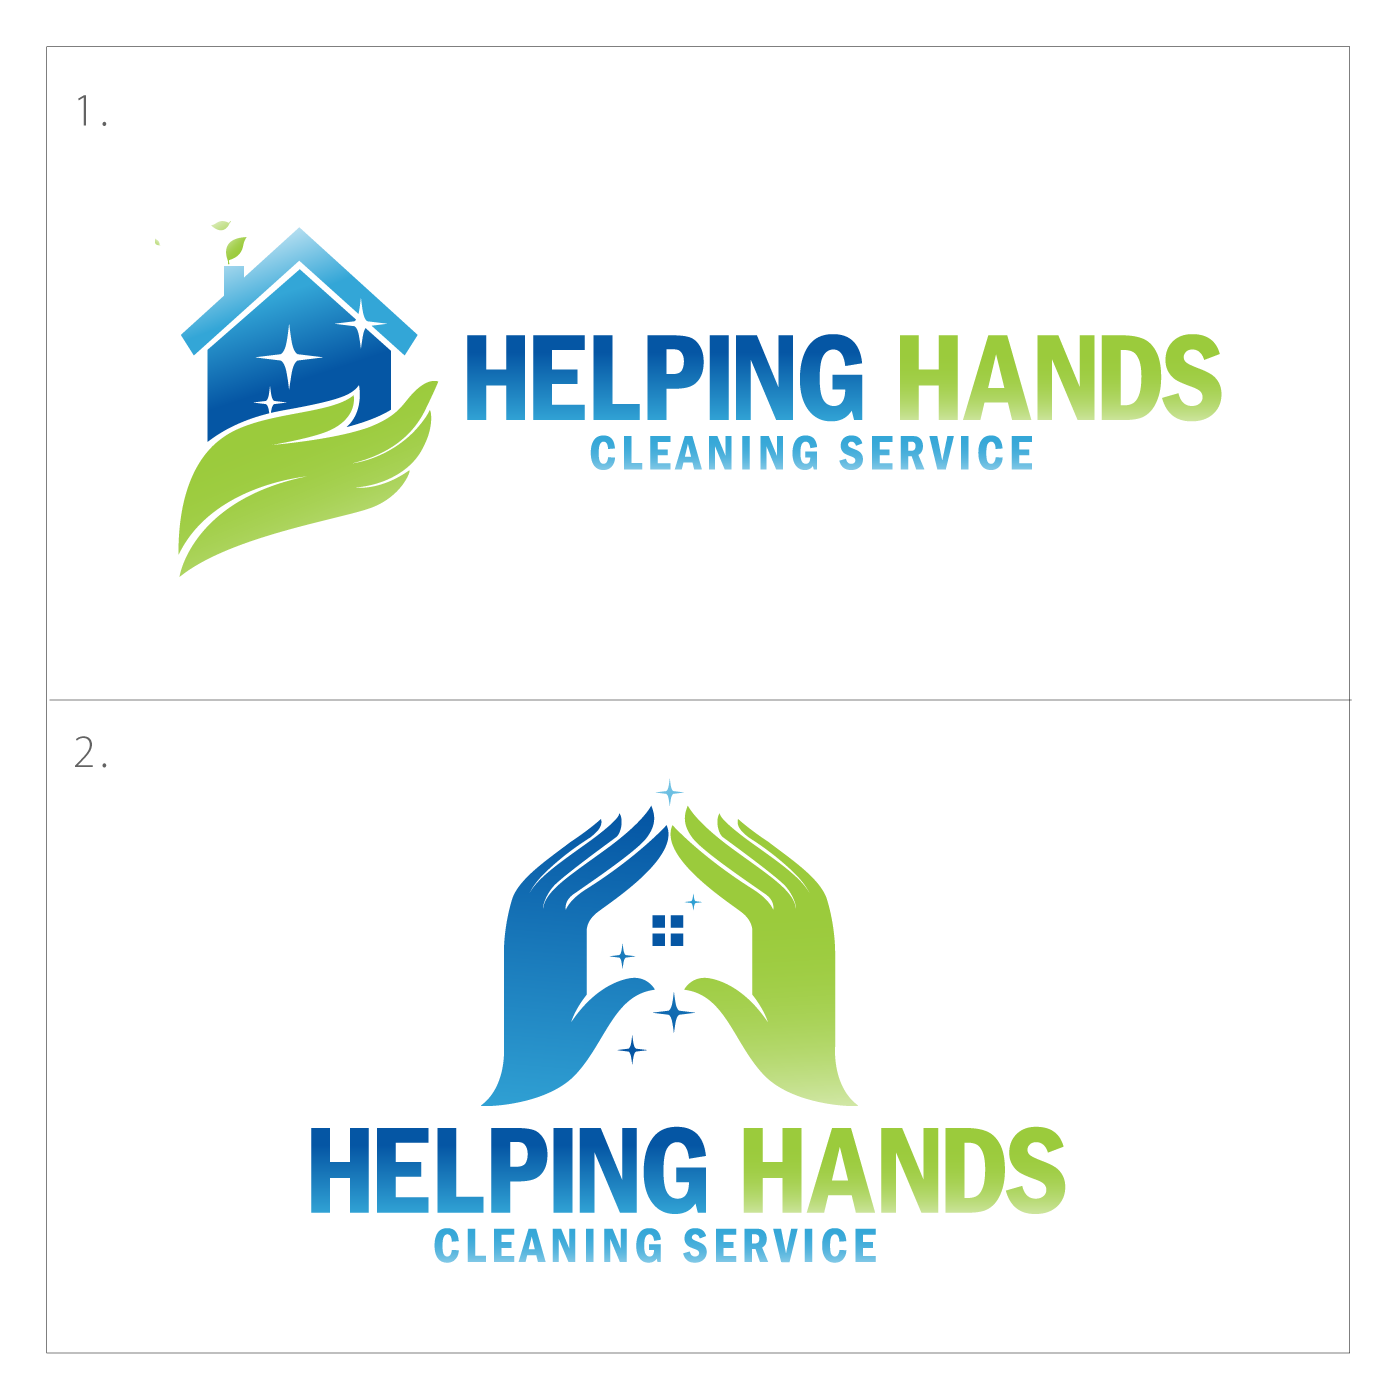 Modern Professional House Cleaning Logo Design For Helping Hands Cleaning Service By Codopoliz Solutions Design 17784840